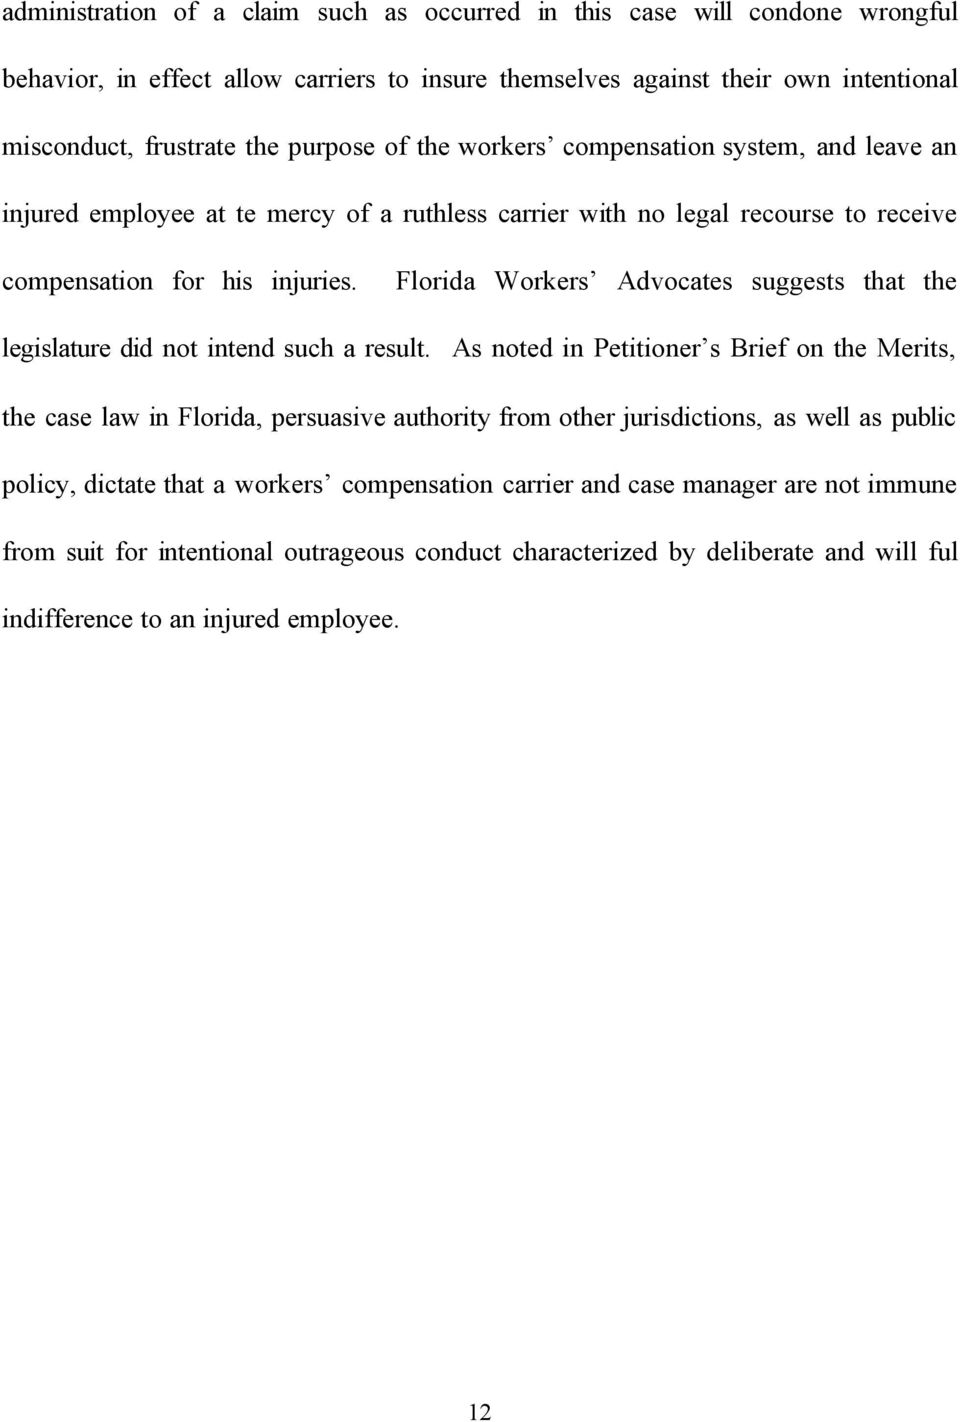 Florida Workers Advocates suggests that the legislature did not intend such a result.